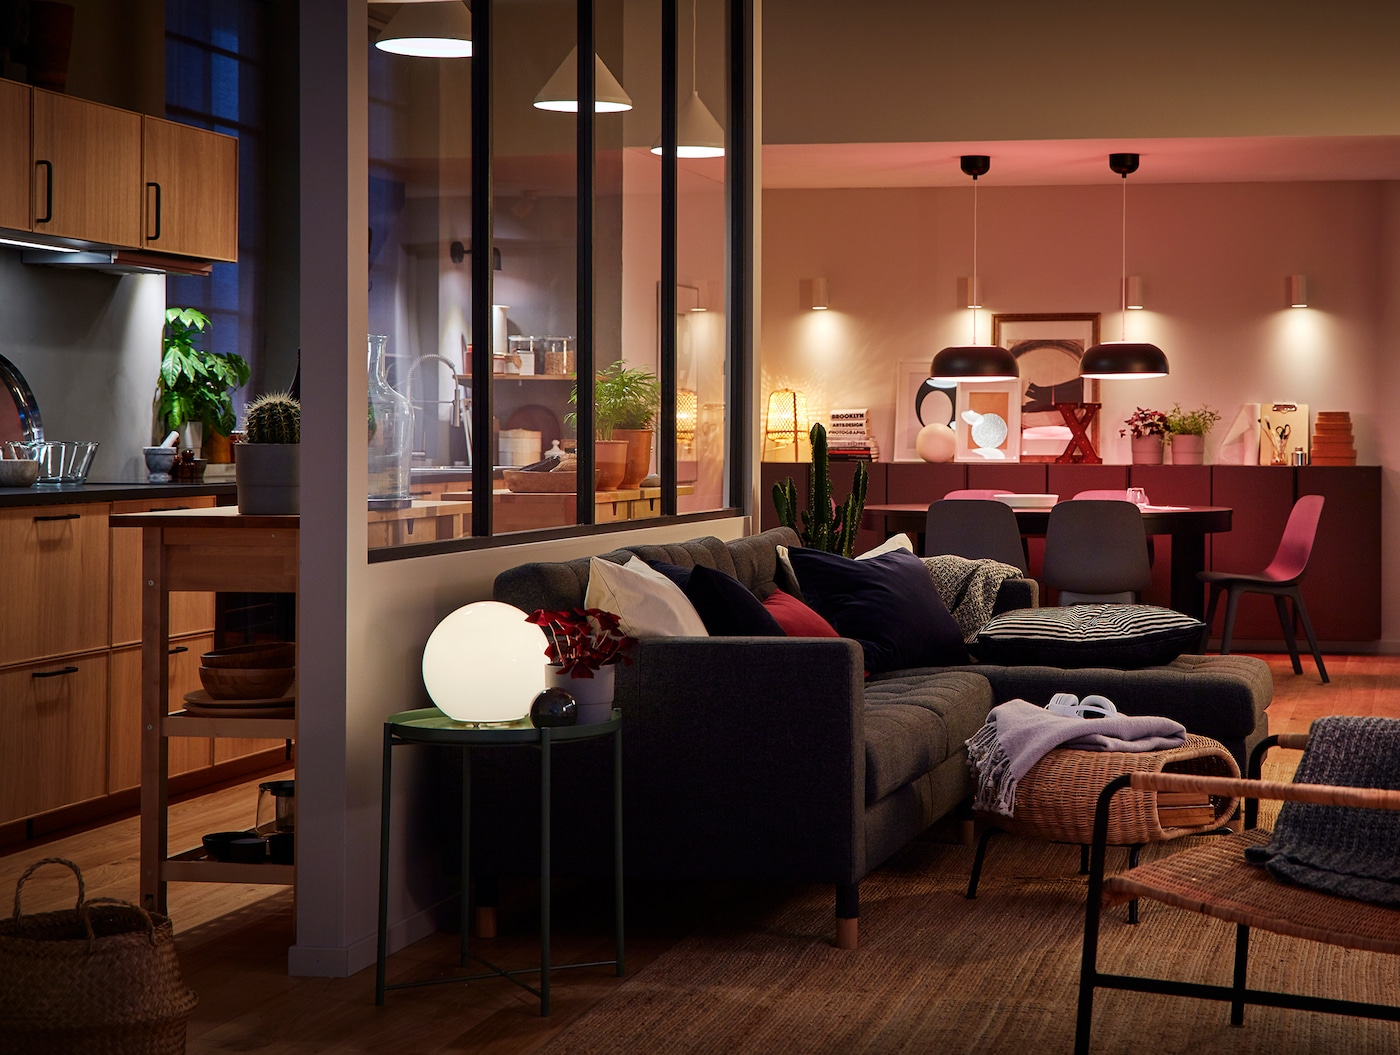 Link to 'Experience IKEA Home smart. Today and everyday.' - image of an open-plan living space with a variety of TRÅDFRI smart lighting solutions.